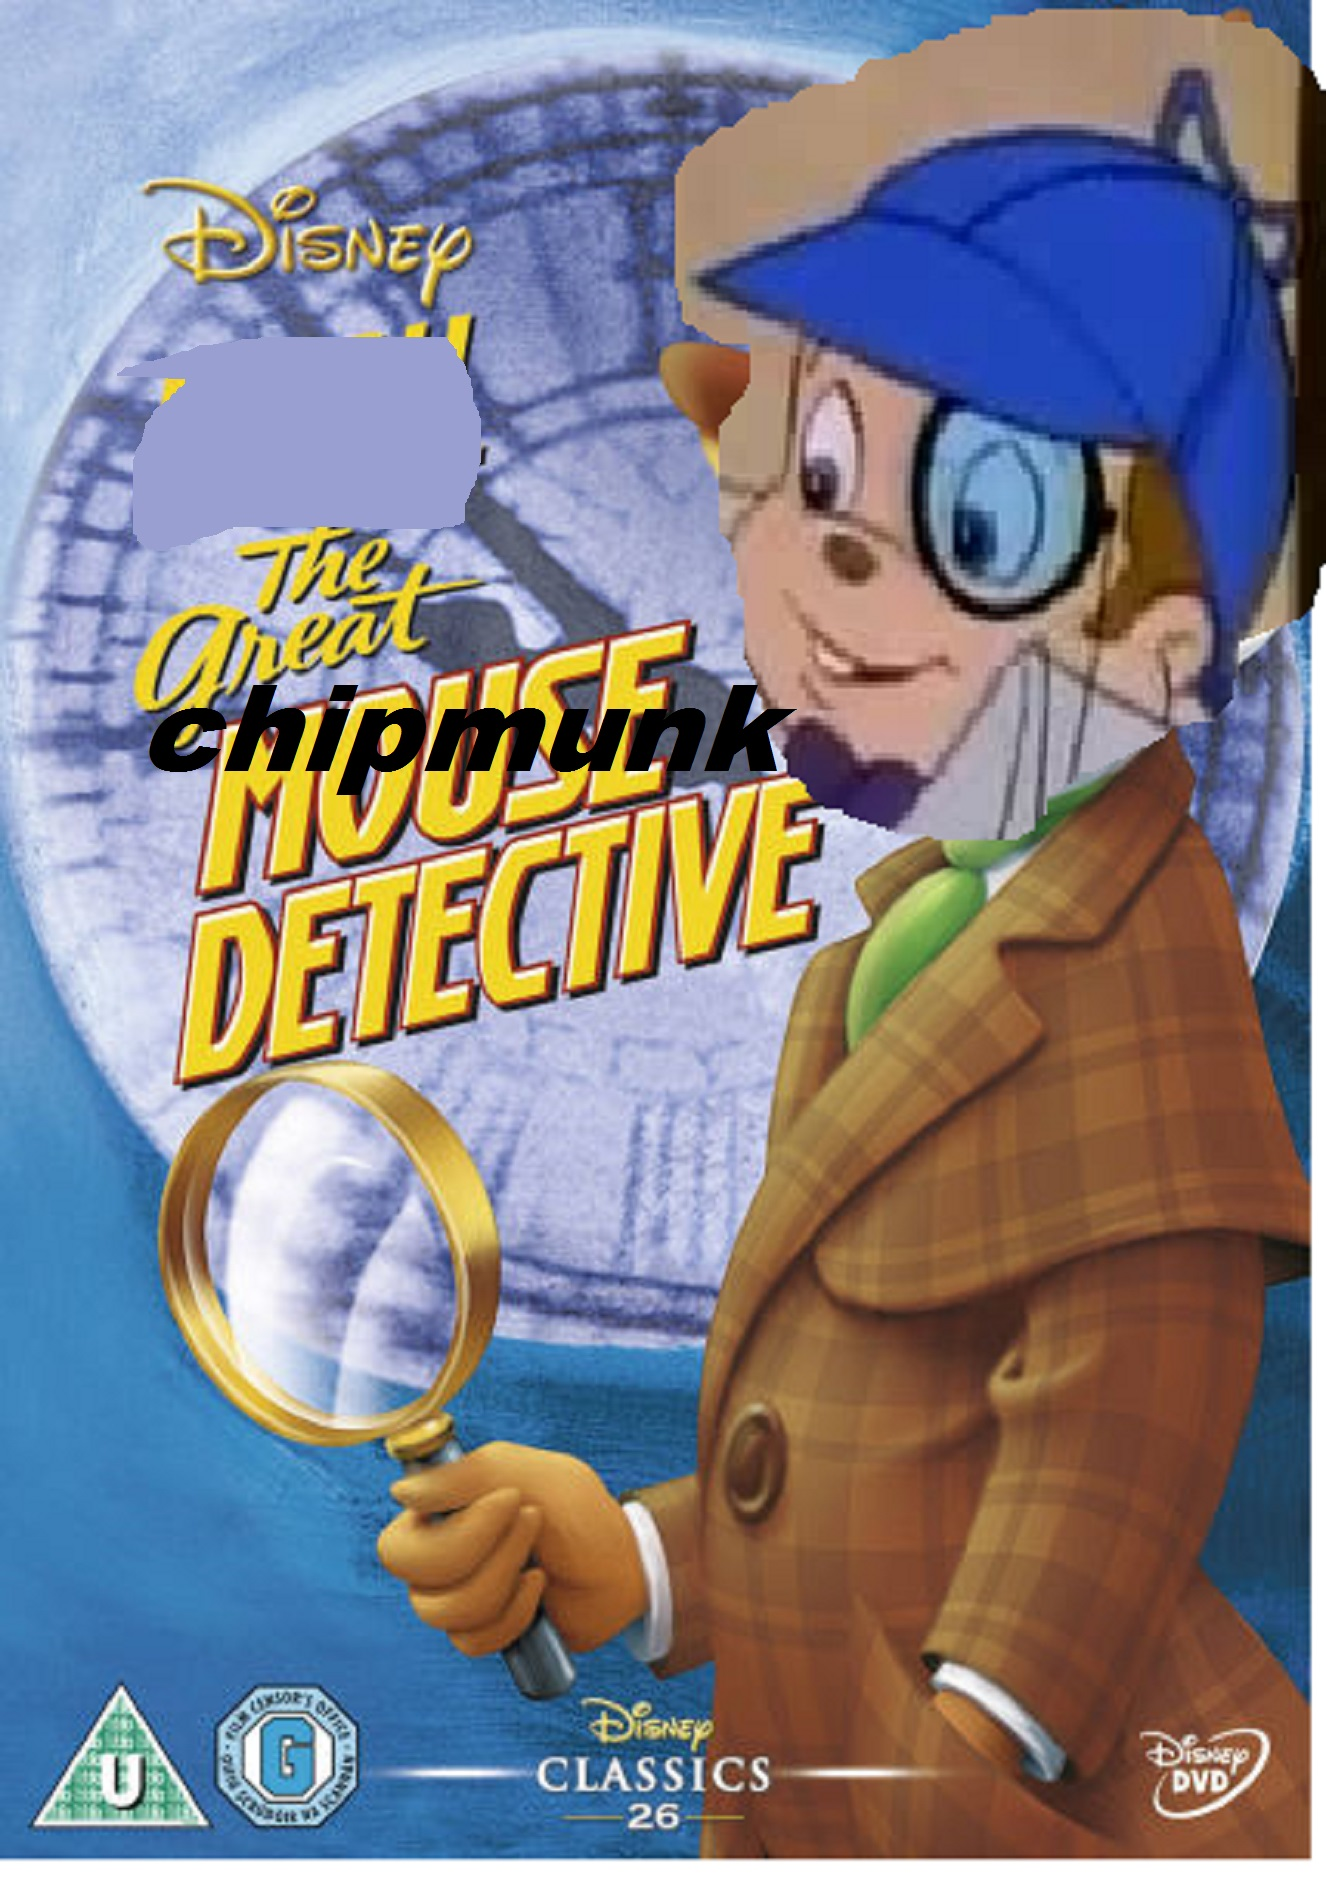 The Great Chipmunk Detective